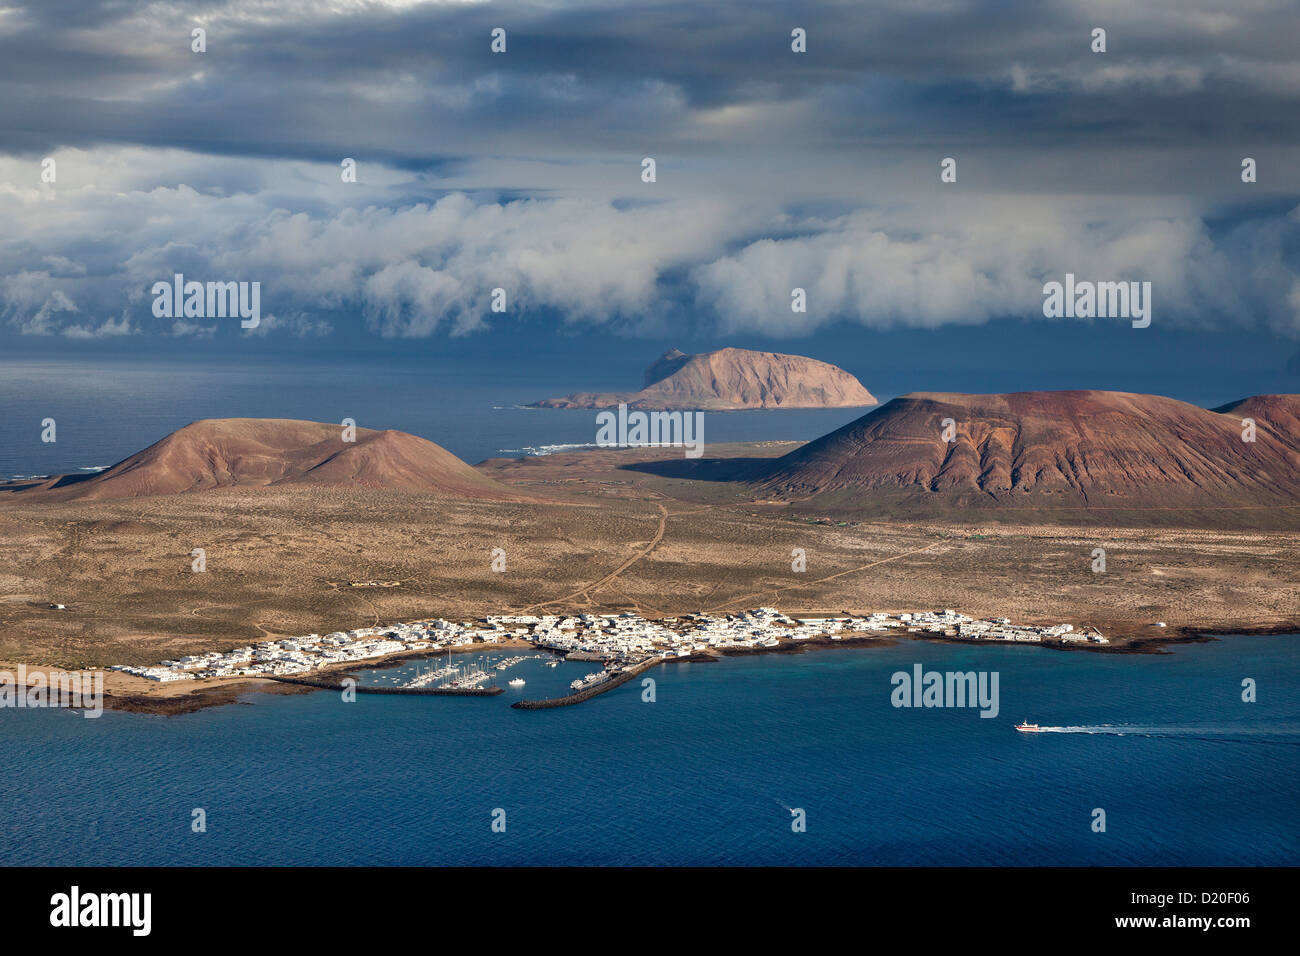 View of the island of La Graciosa under clouded sky, Lanzarote, Canary Islands, Spain, Europe - Stock Image